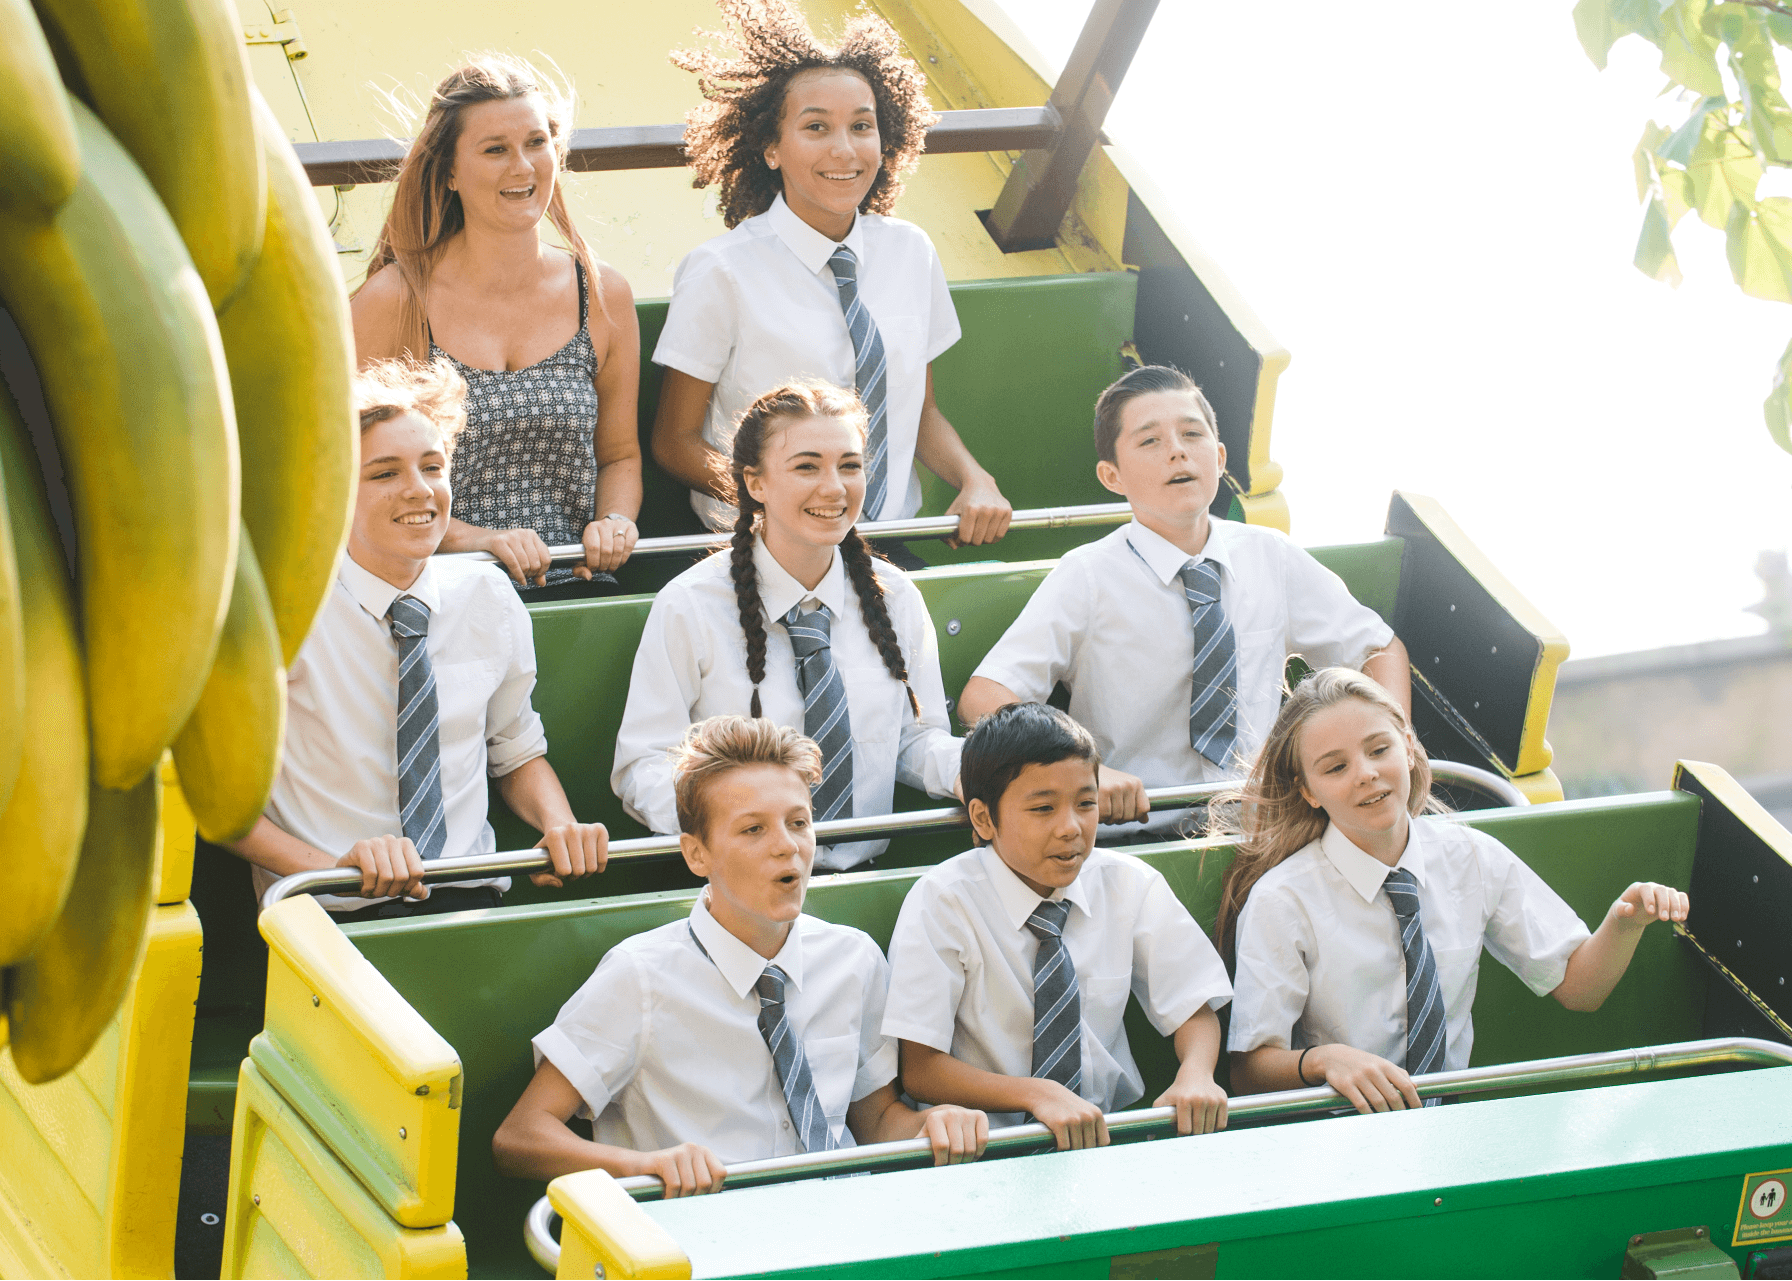 Primary School Group And Teacher On Mr Monkeys Banana Ride